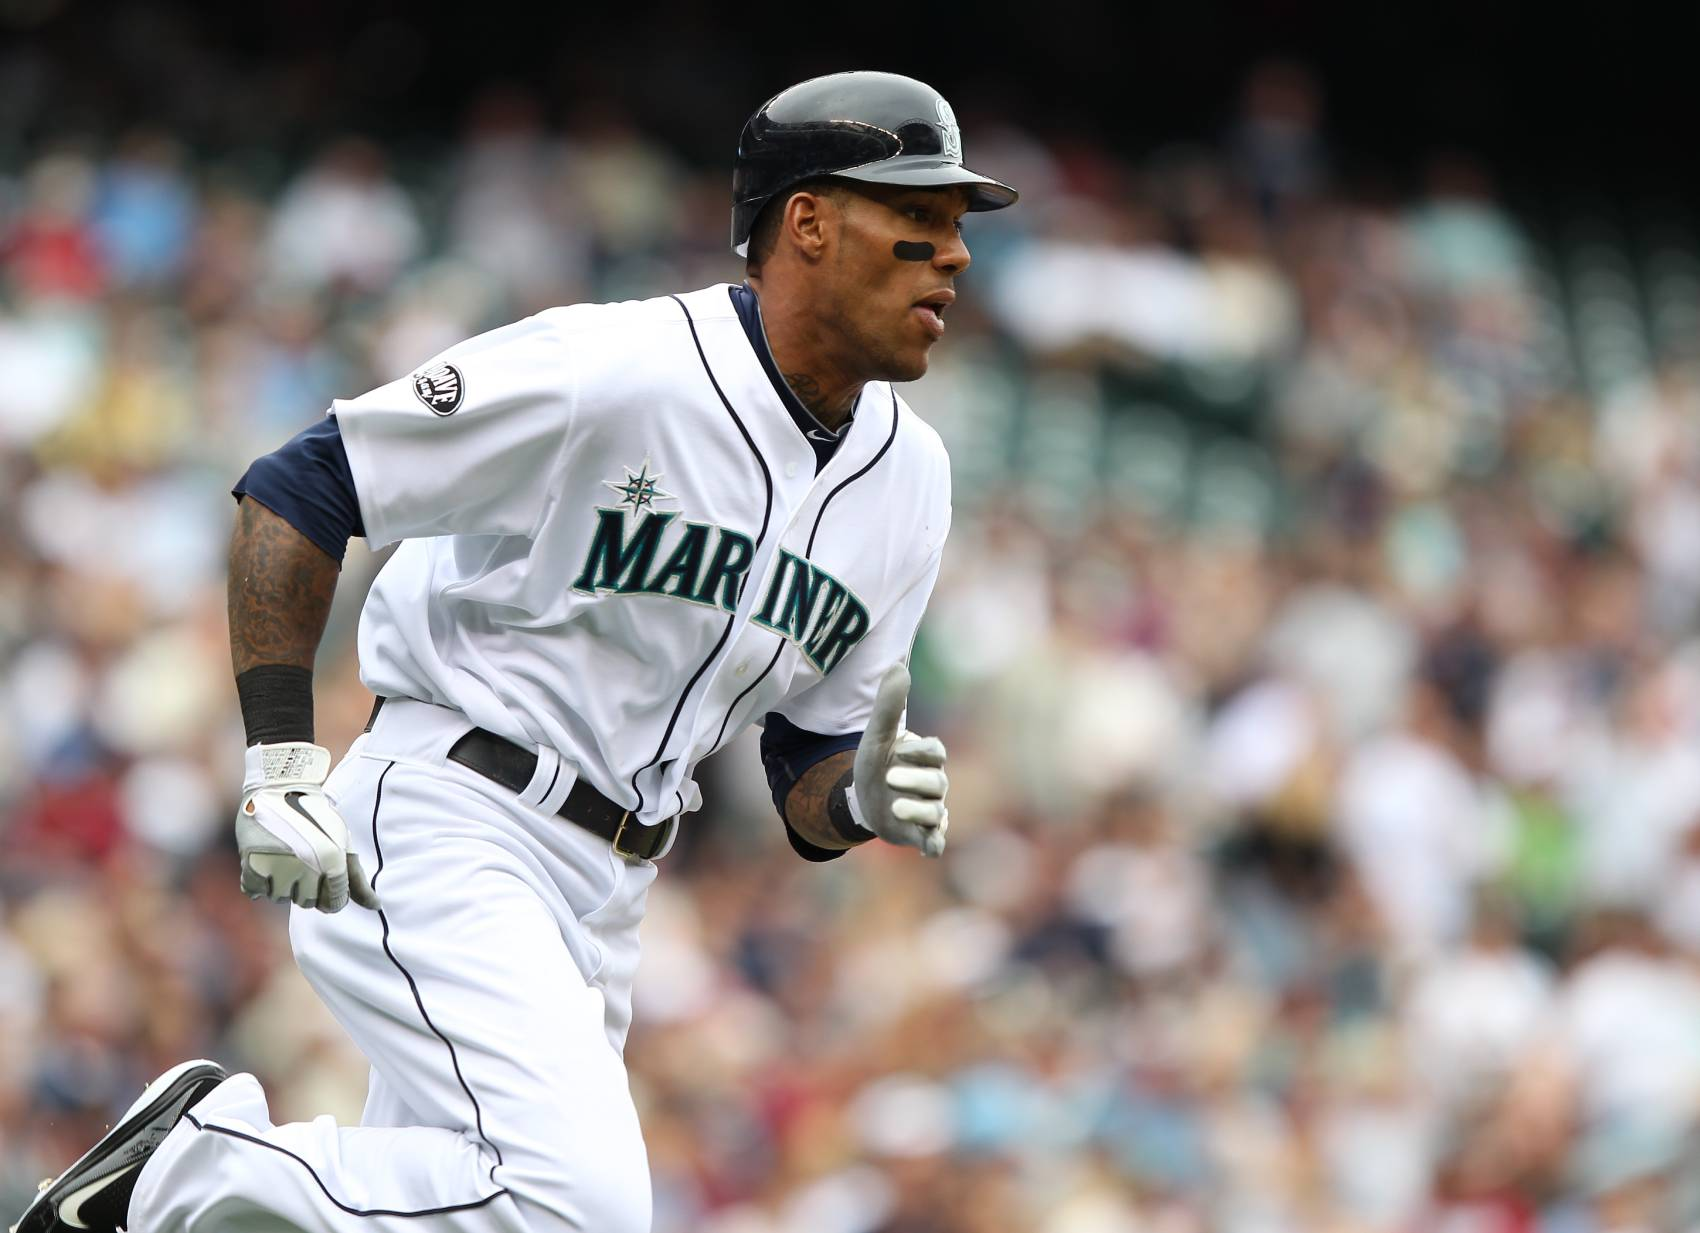 Young Mariners Outfielder Greg Halman's Tragic Murder Came Three Months After His Final MLB Game